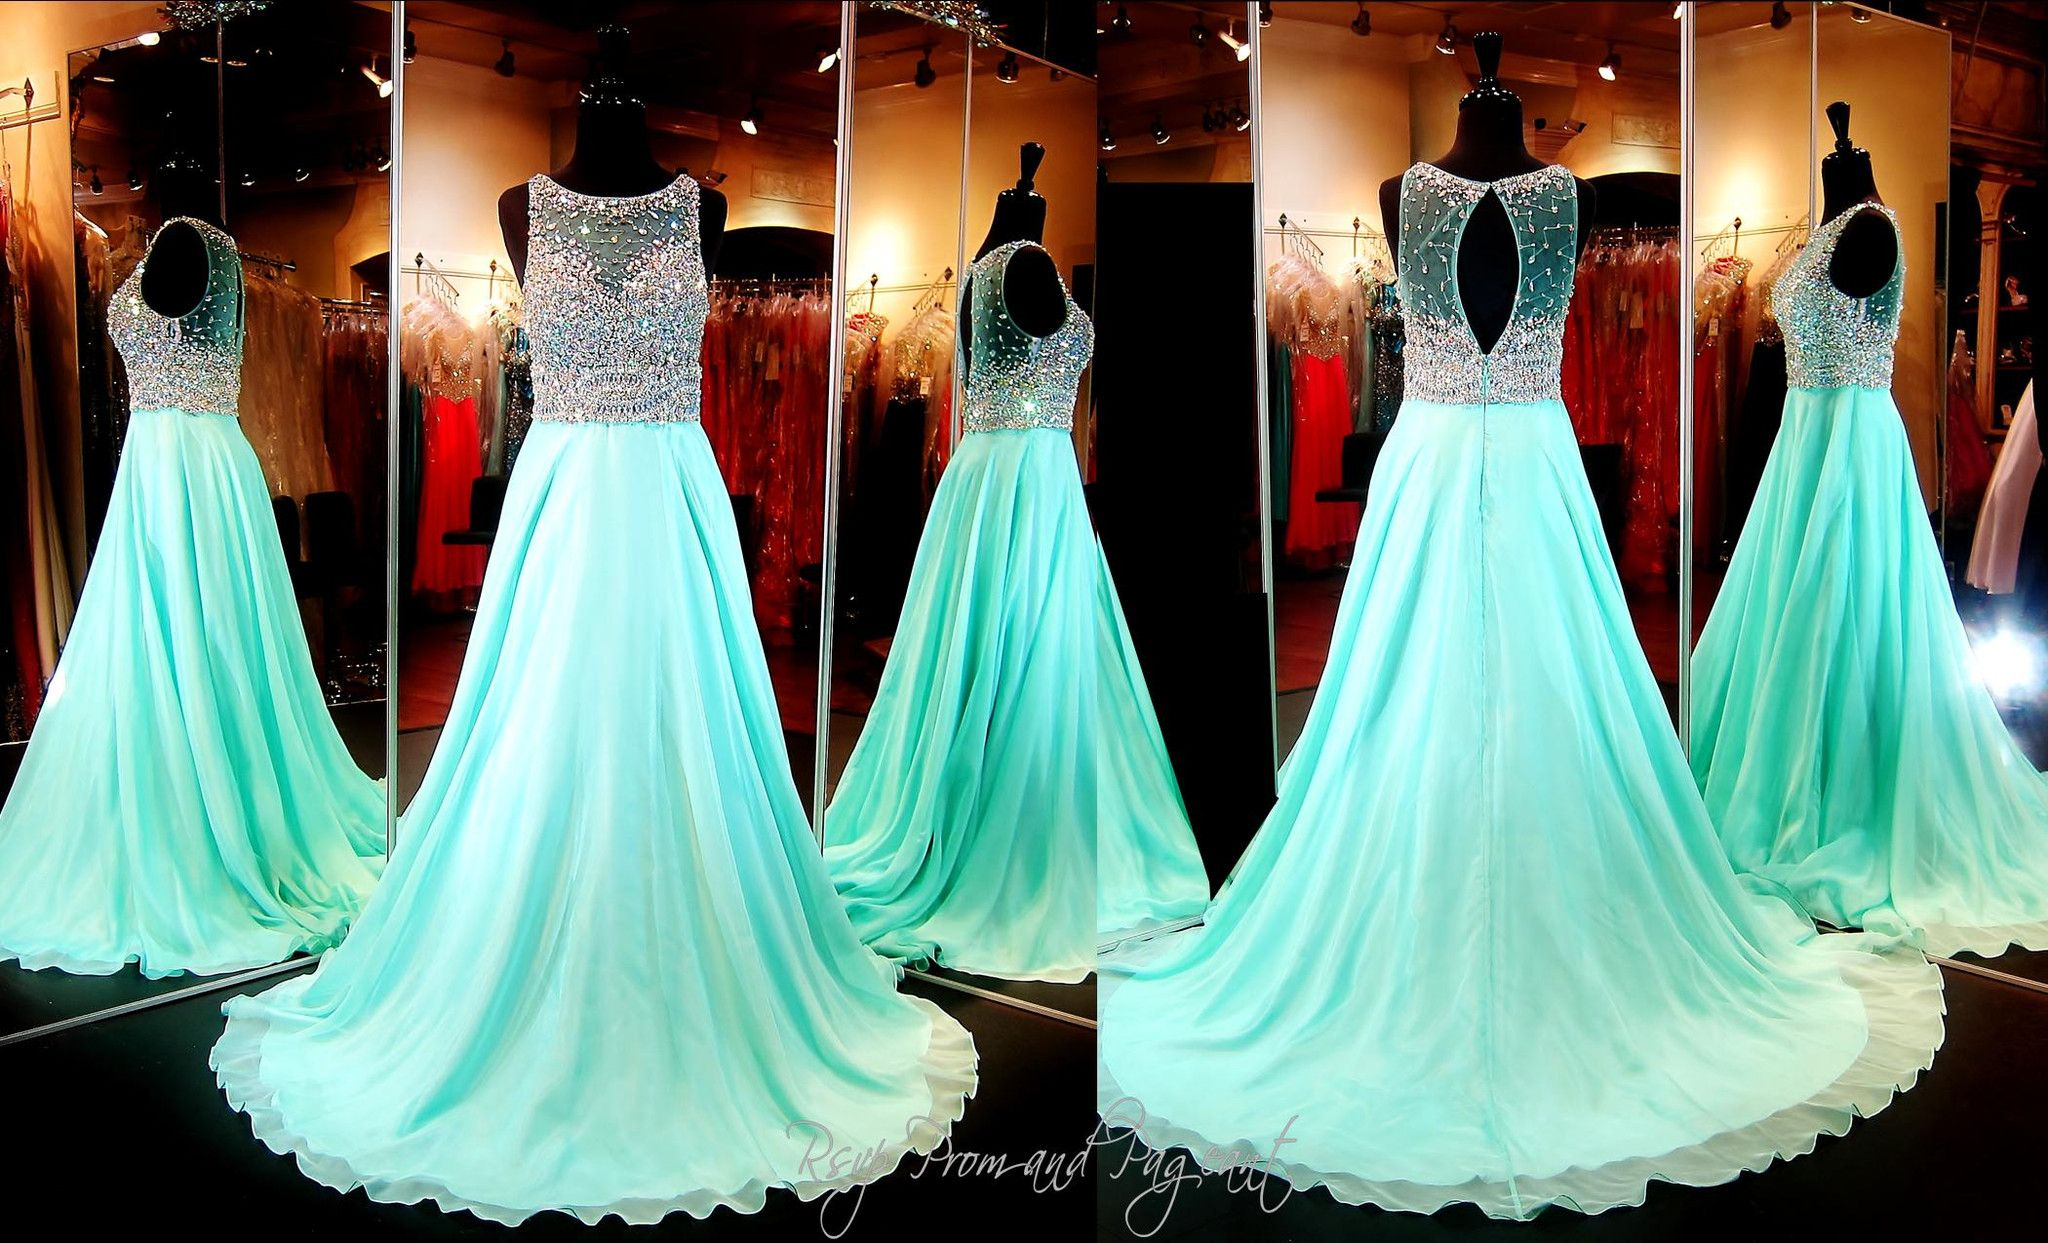 Mint A-Line Chiffon Prom or Pageant Dress-Fully Beaded Mesh Bodice ...